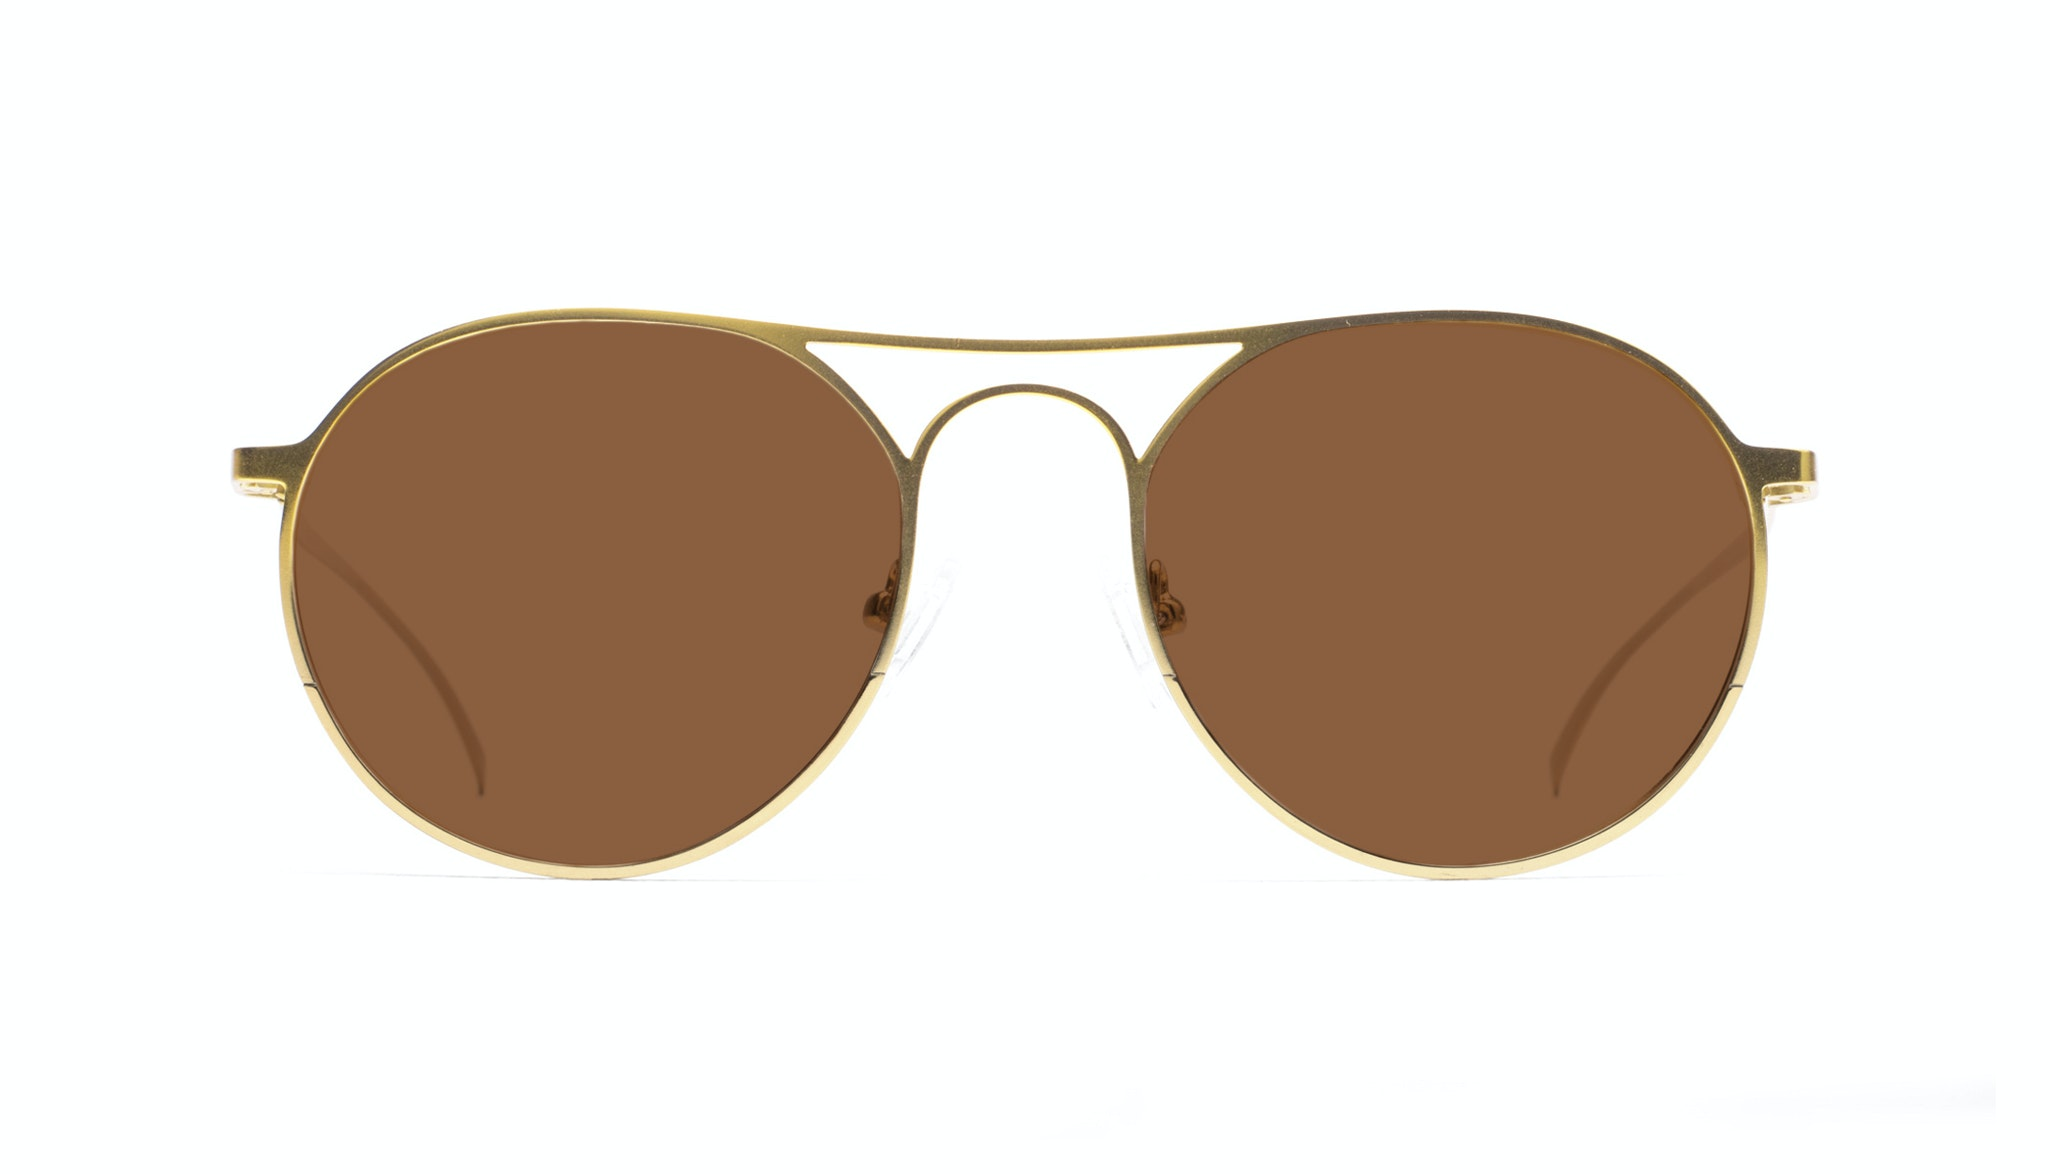 Affordable Fashion Glasses Aviator Round Sunglasses Men Contour Gold Front